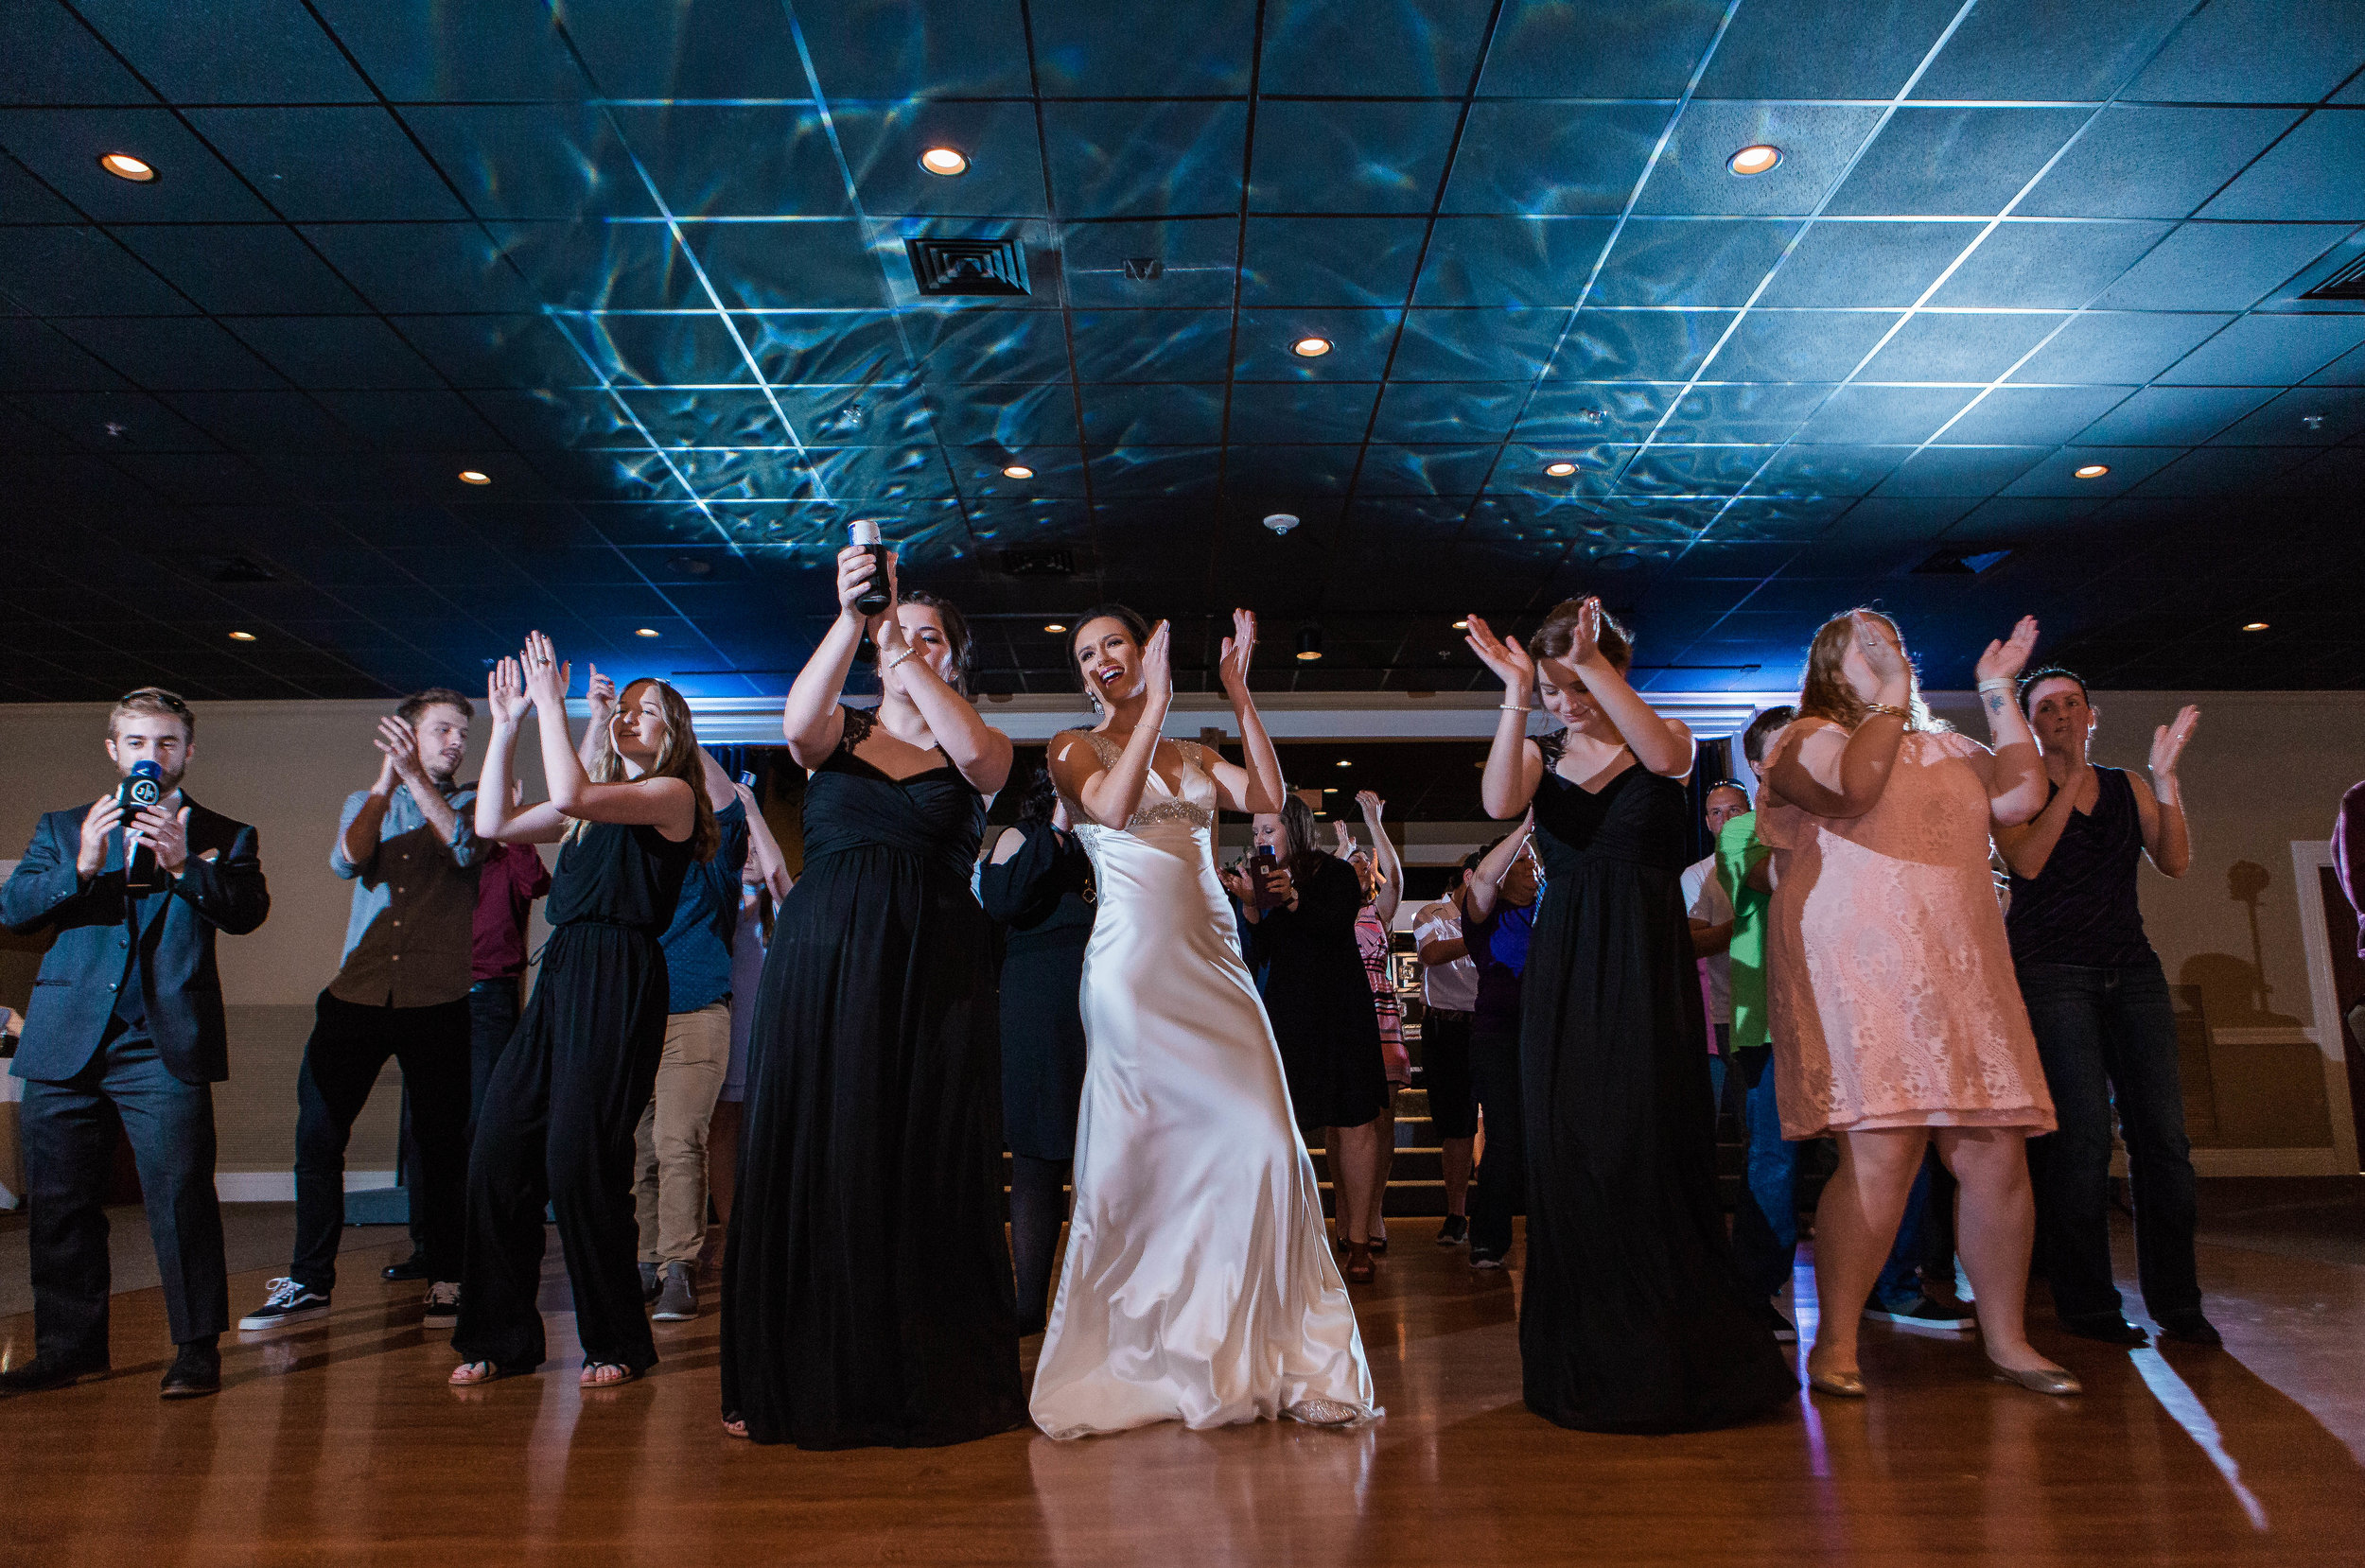 Reception at Let's party! Wedding guest and couple are enjoying their reception atThe Grand Marais Ballroom and Pavillion - Jennings Louisiana